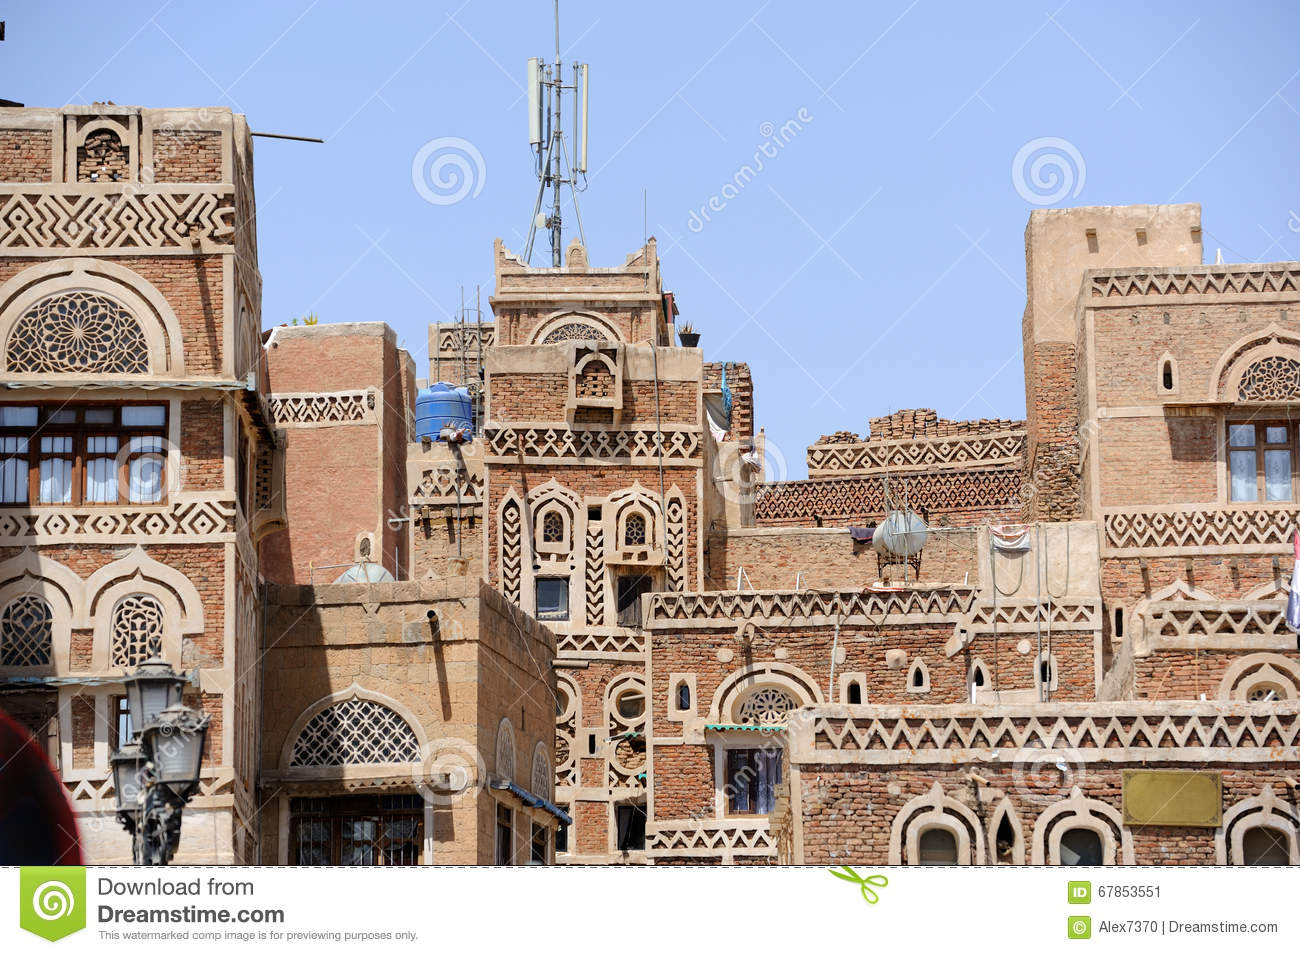 Yemen Traditional Architecture Of Old Town In Sanaa Stock